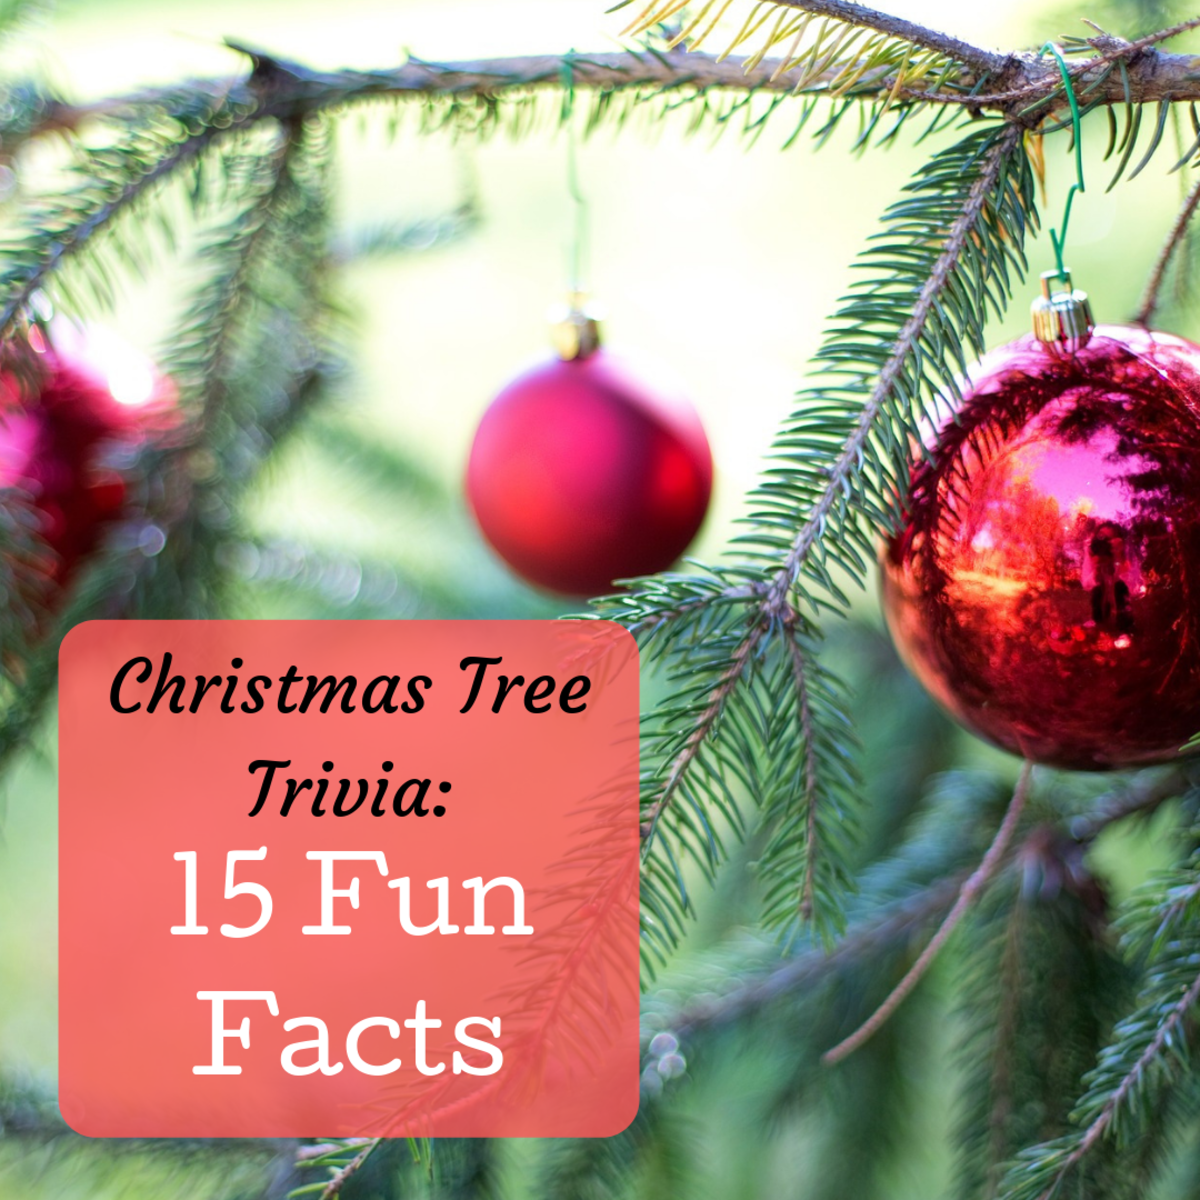 Find out how much you really know about the tradition of the Christmas tree with these 15 trivia facts!